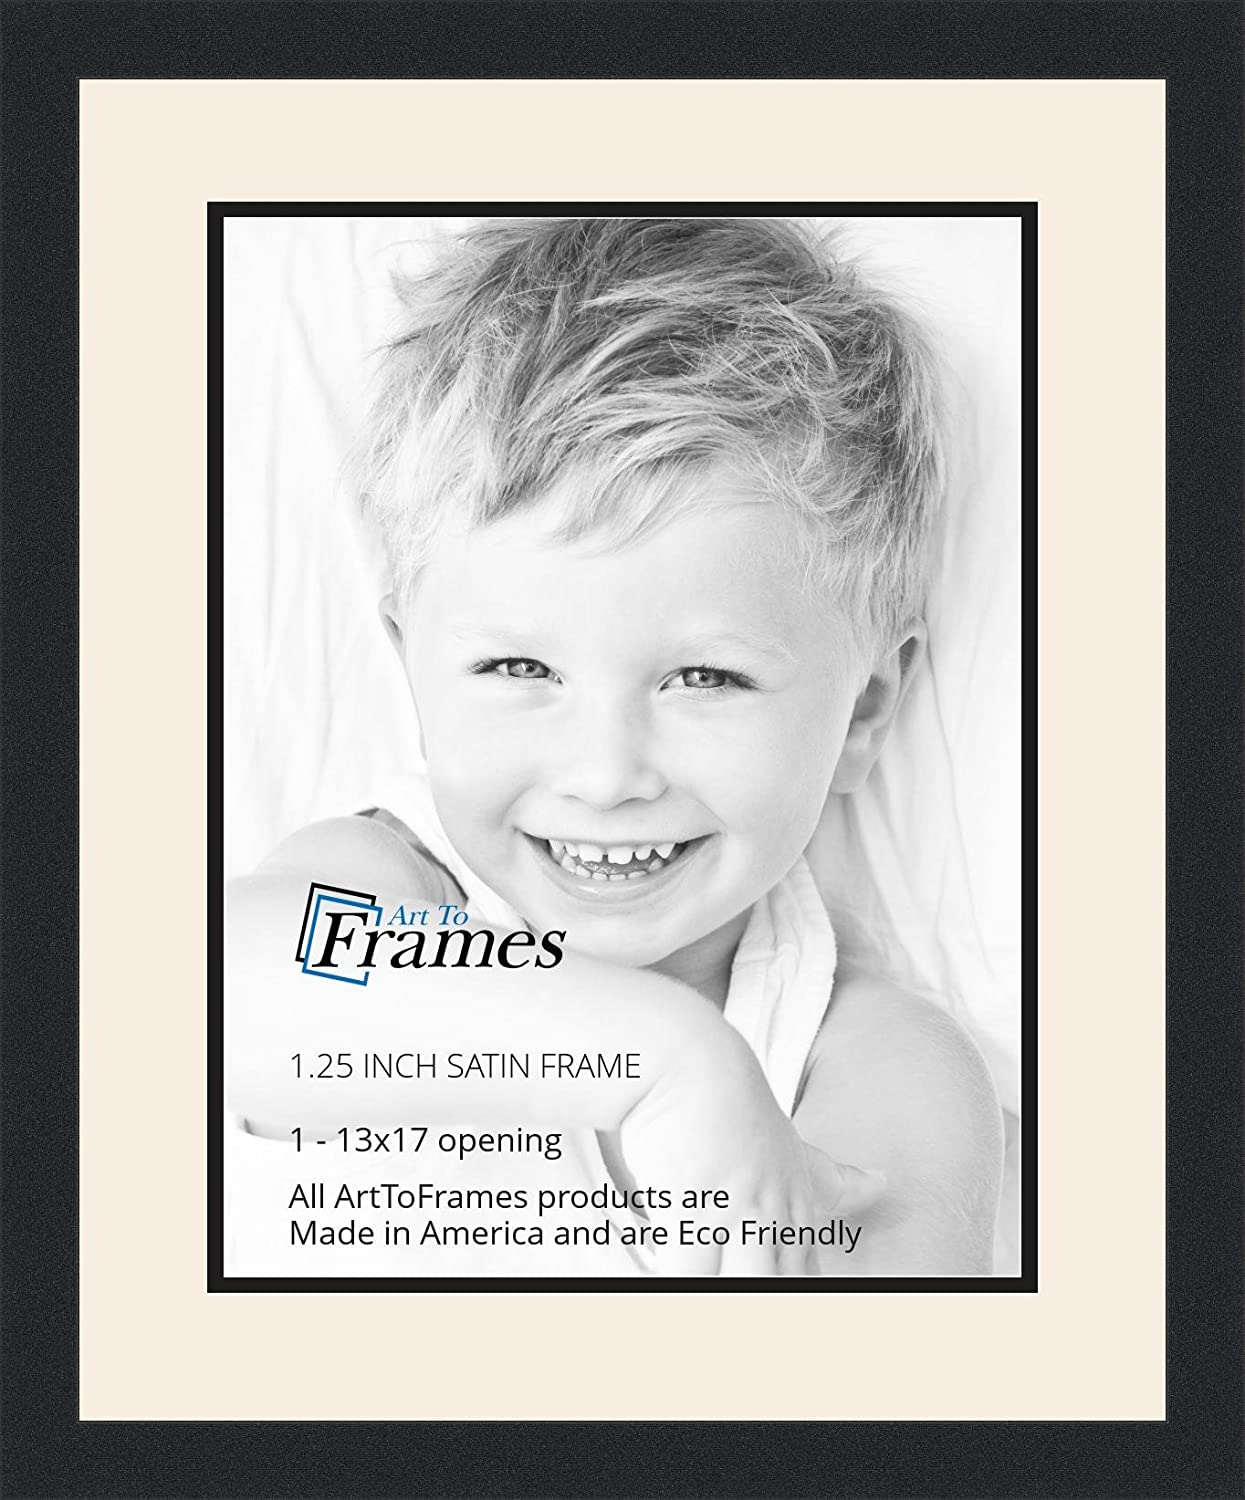 Amazon.com - ArtToFrames Collage Photo Frame Double Mat with 1-13x17 ...